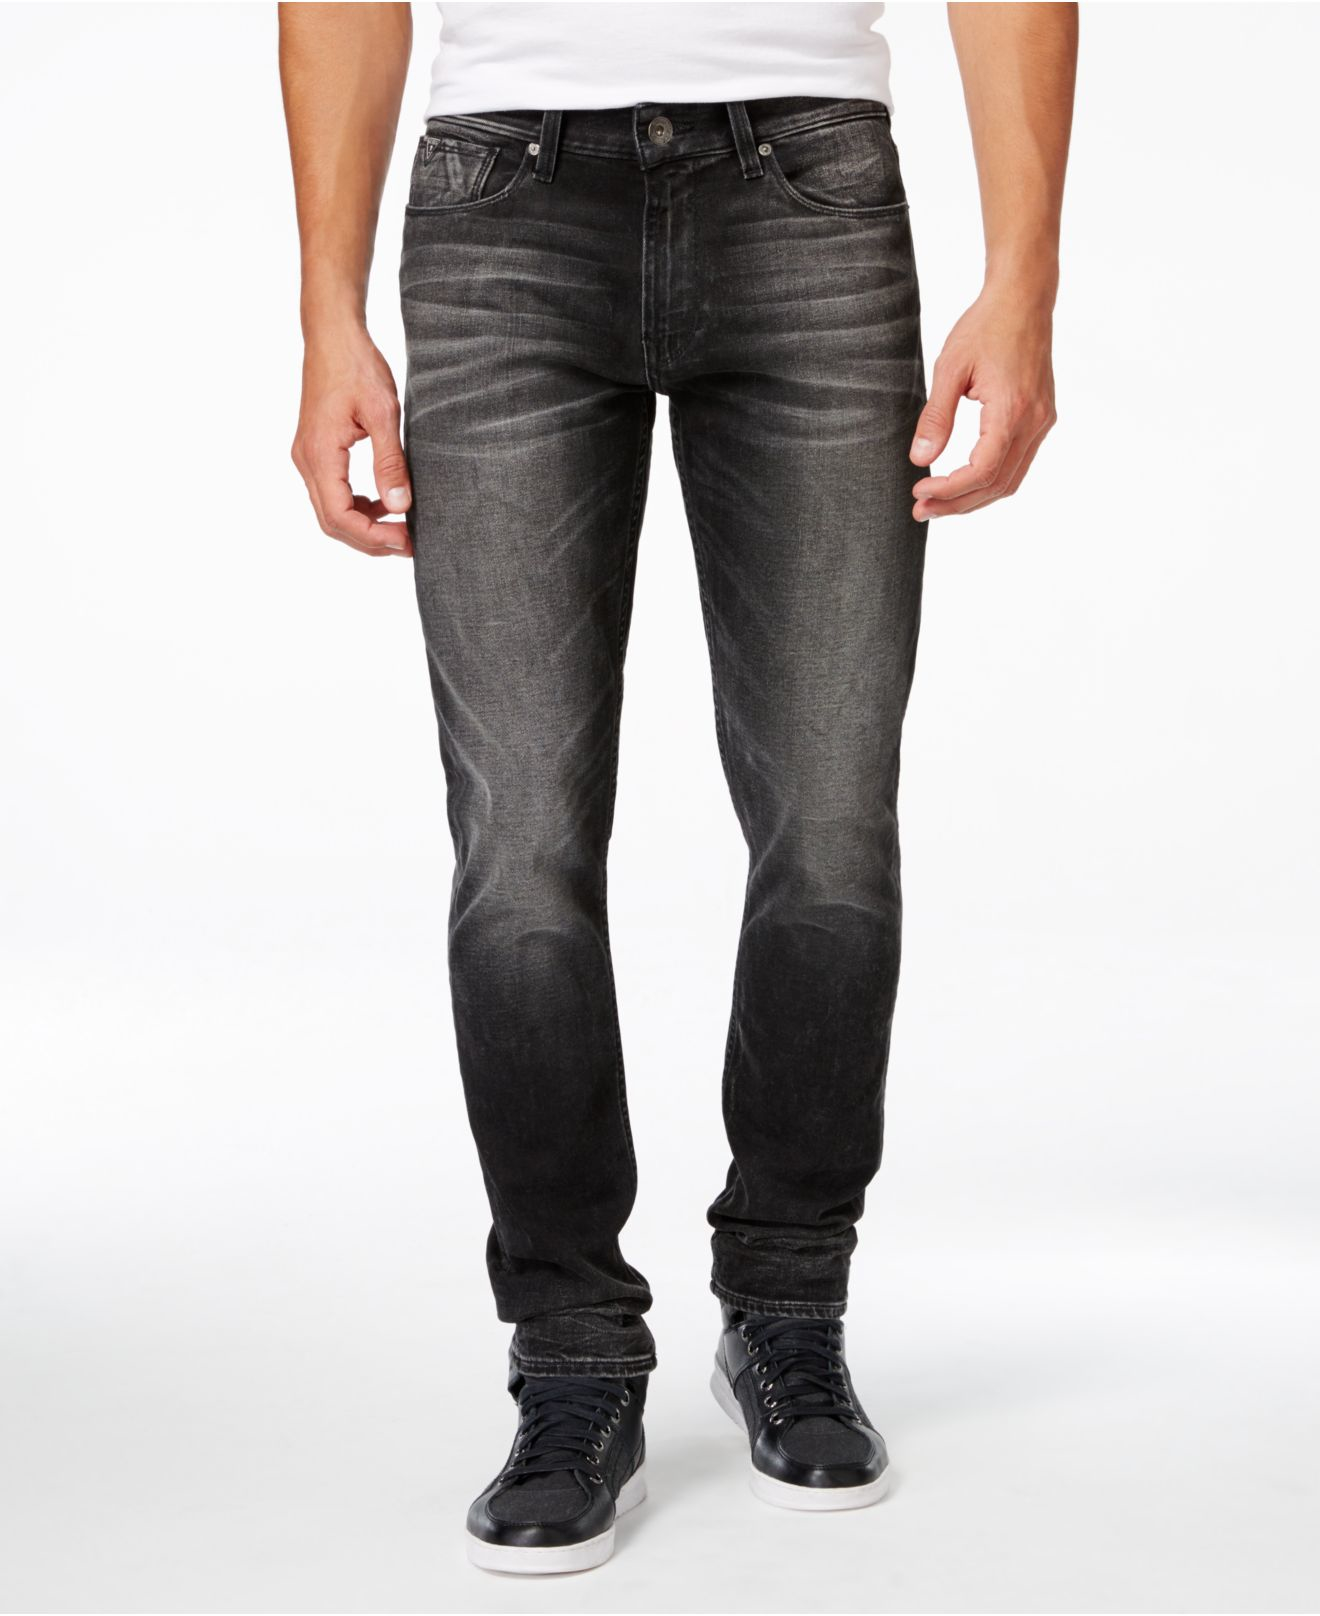 Gray Skinny Jeans Mens